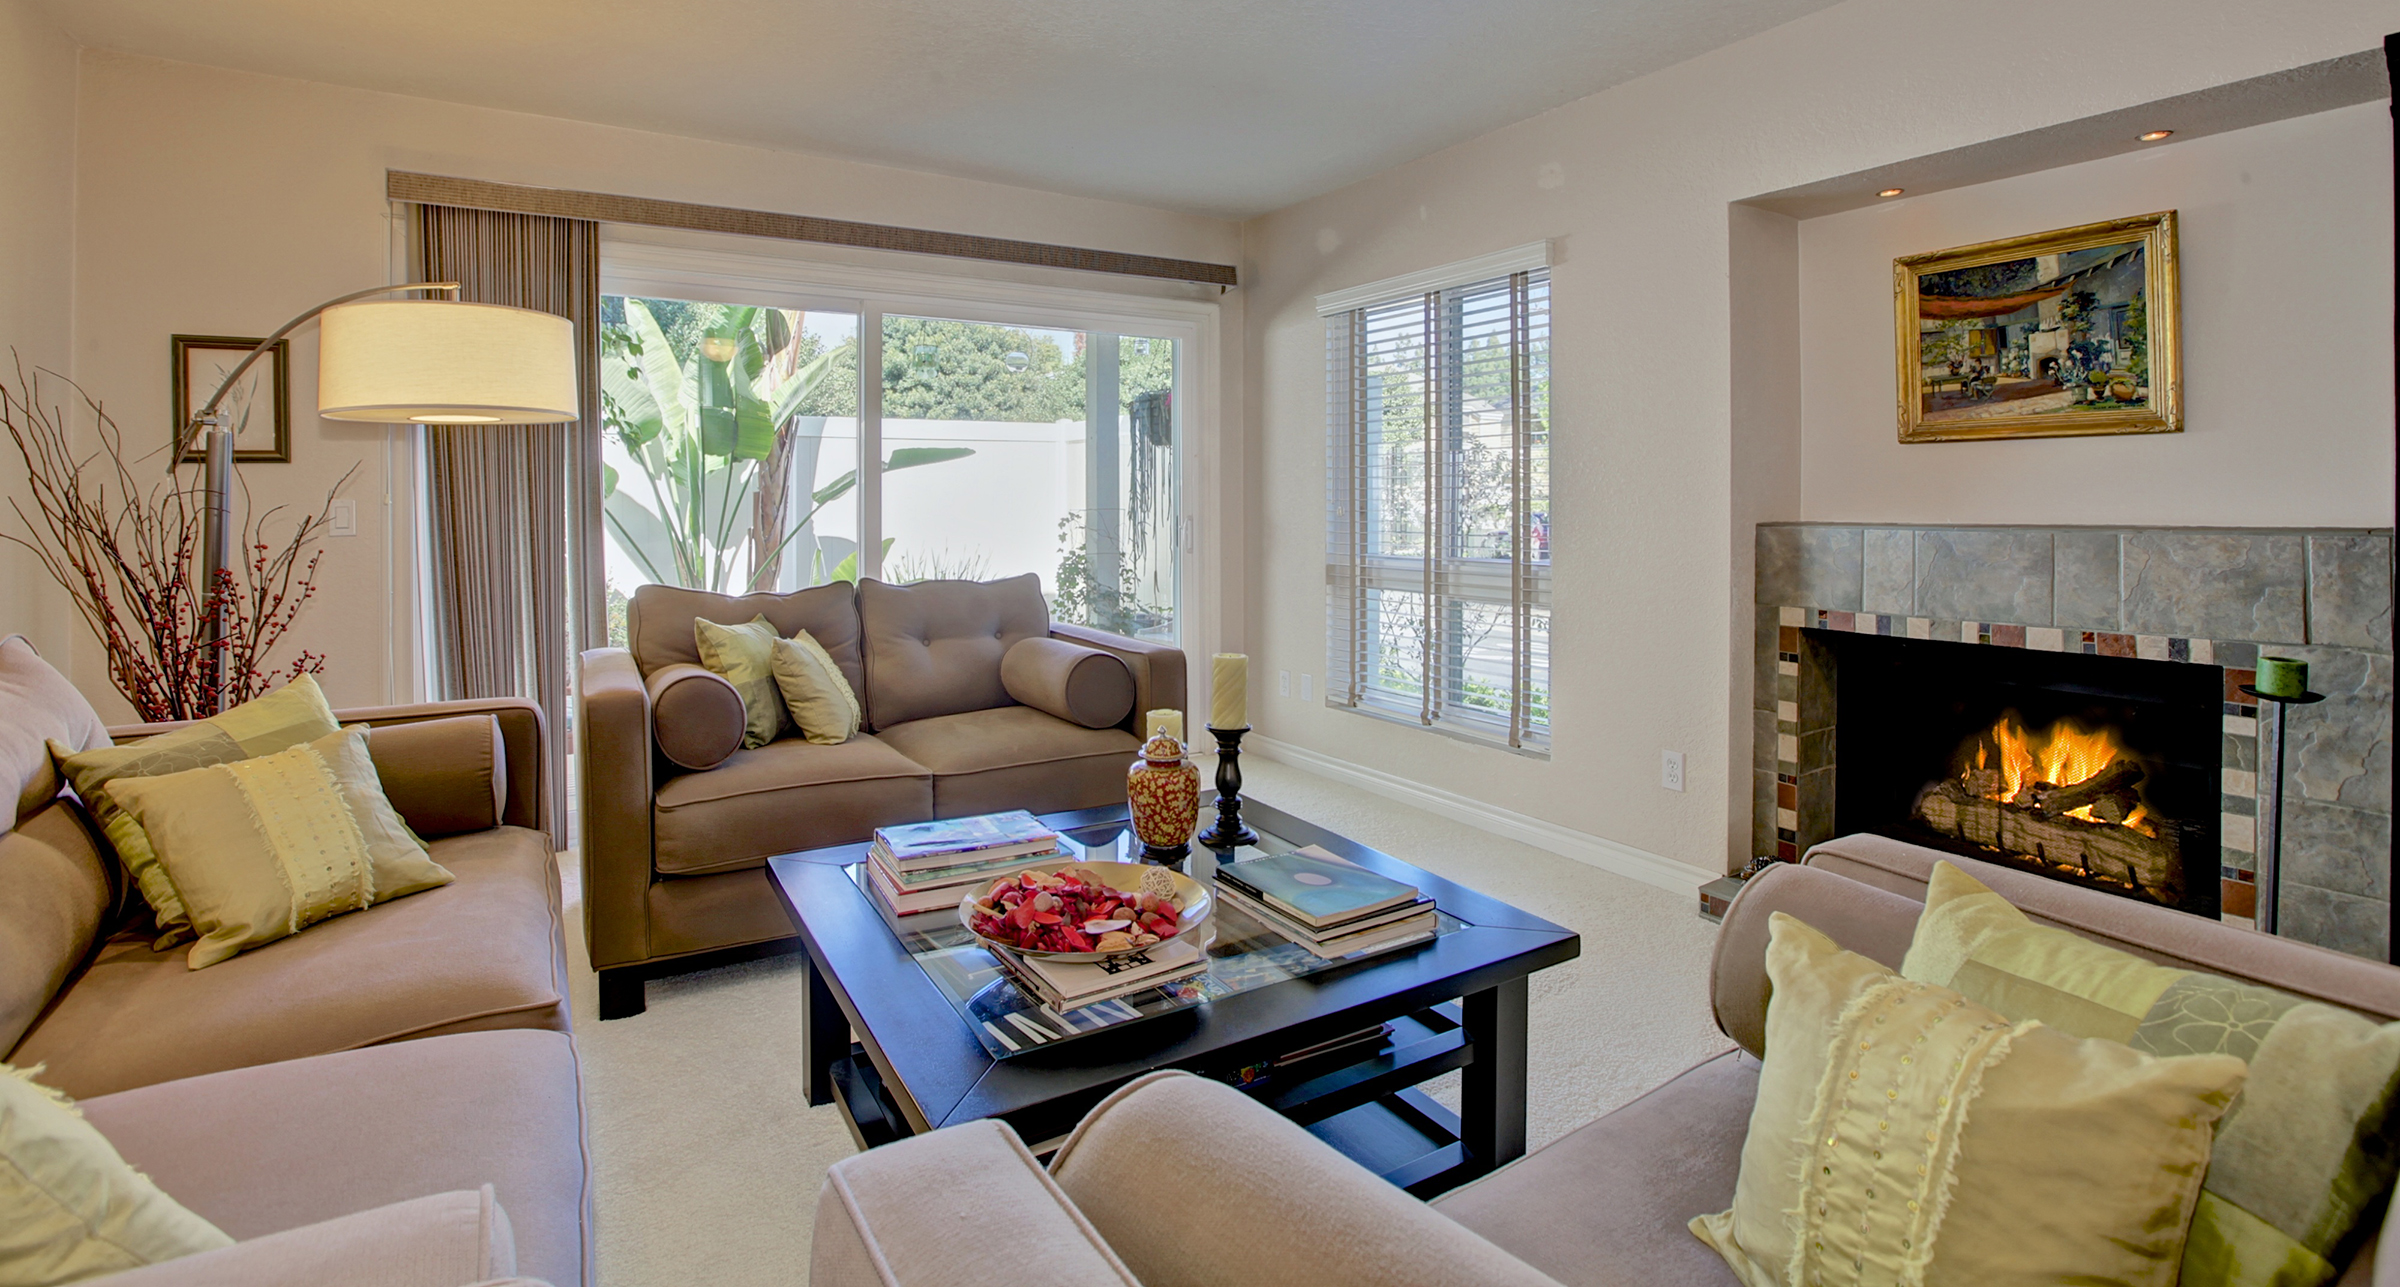 Home Staging by Jackie Gibbins Mission Viejo